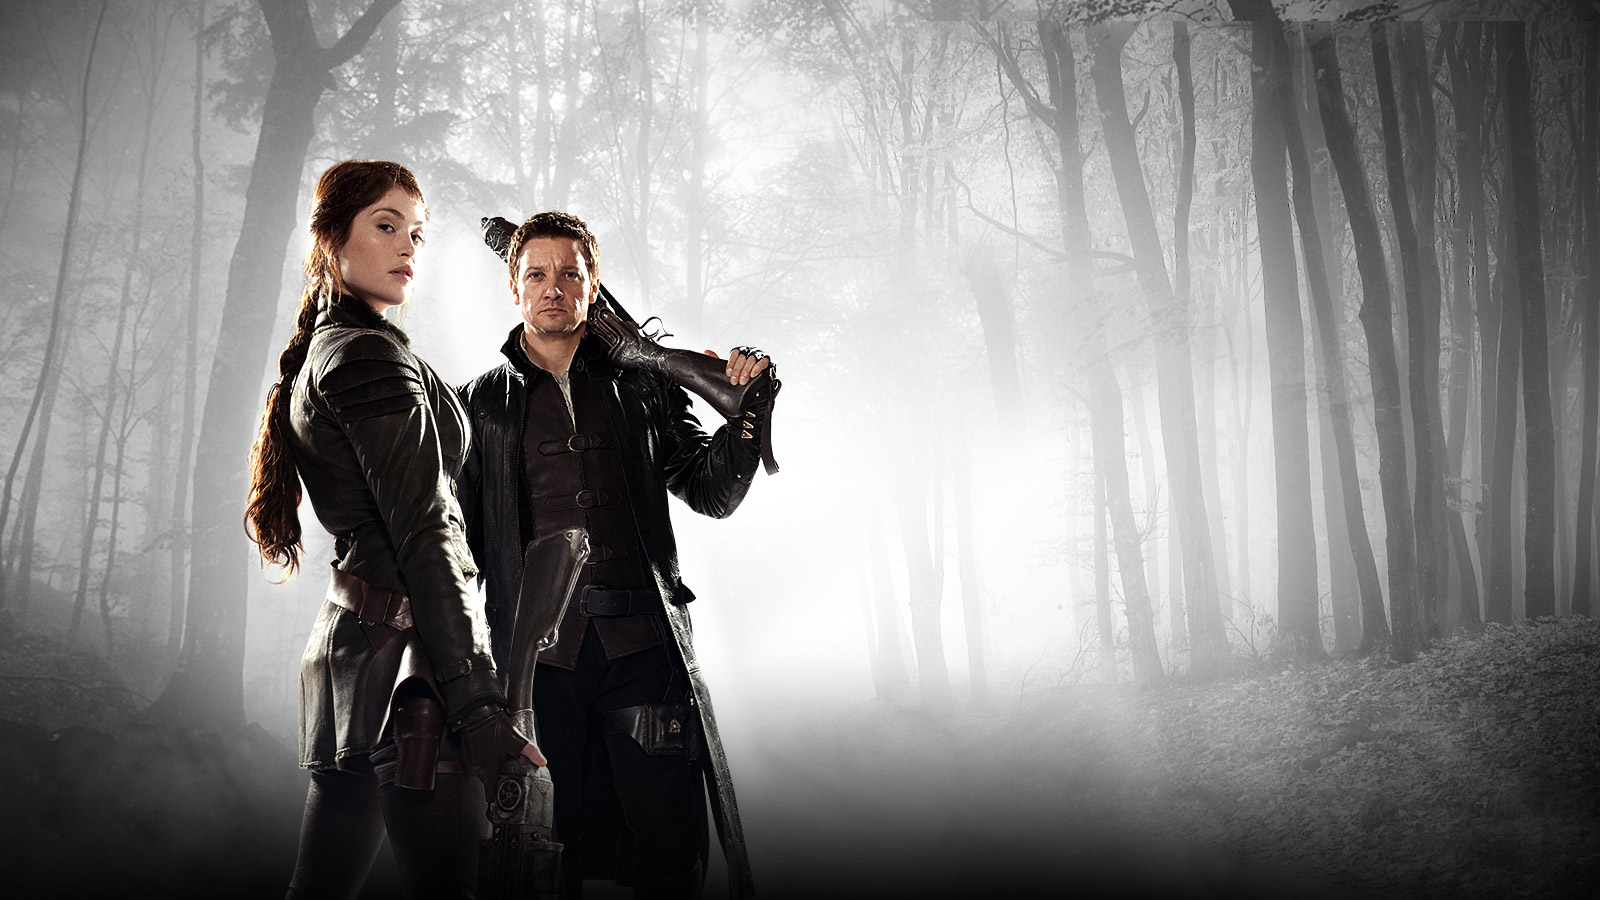 image - wiki-background | hansel & gretel: witch hunters wiki